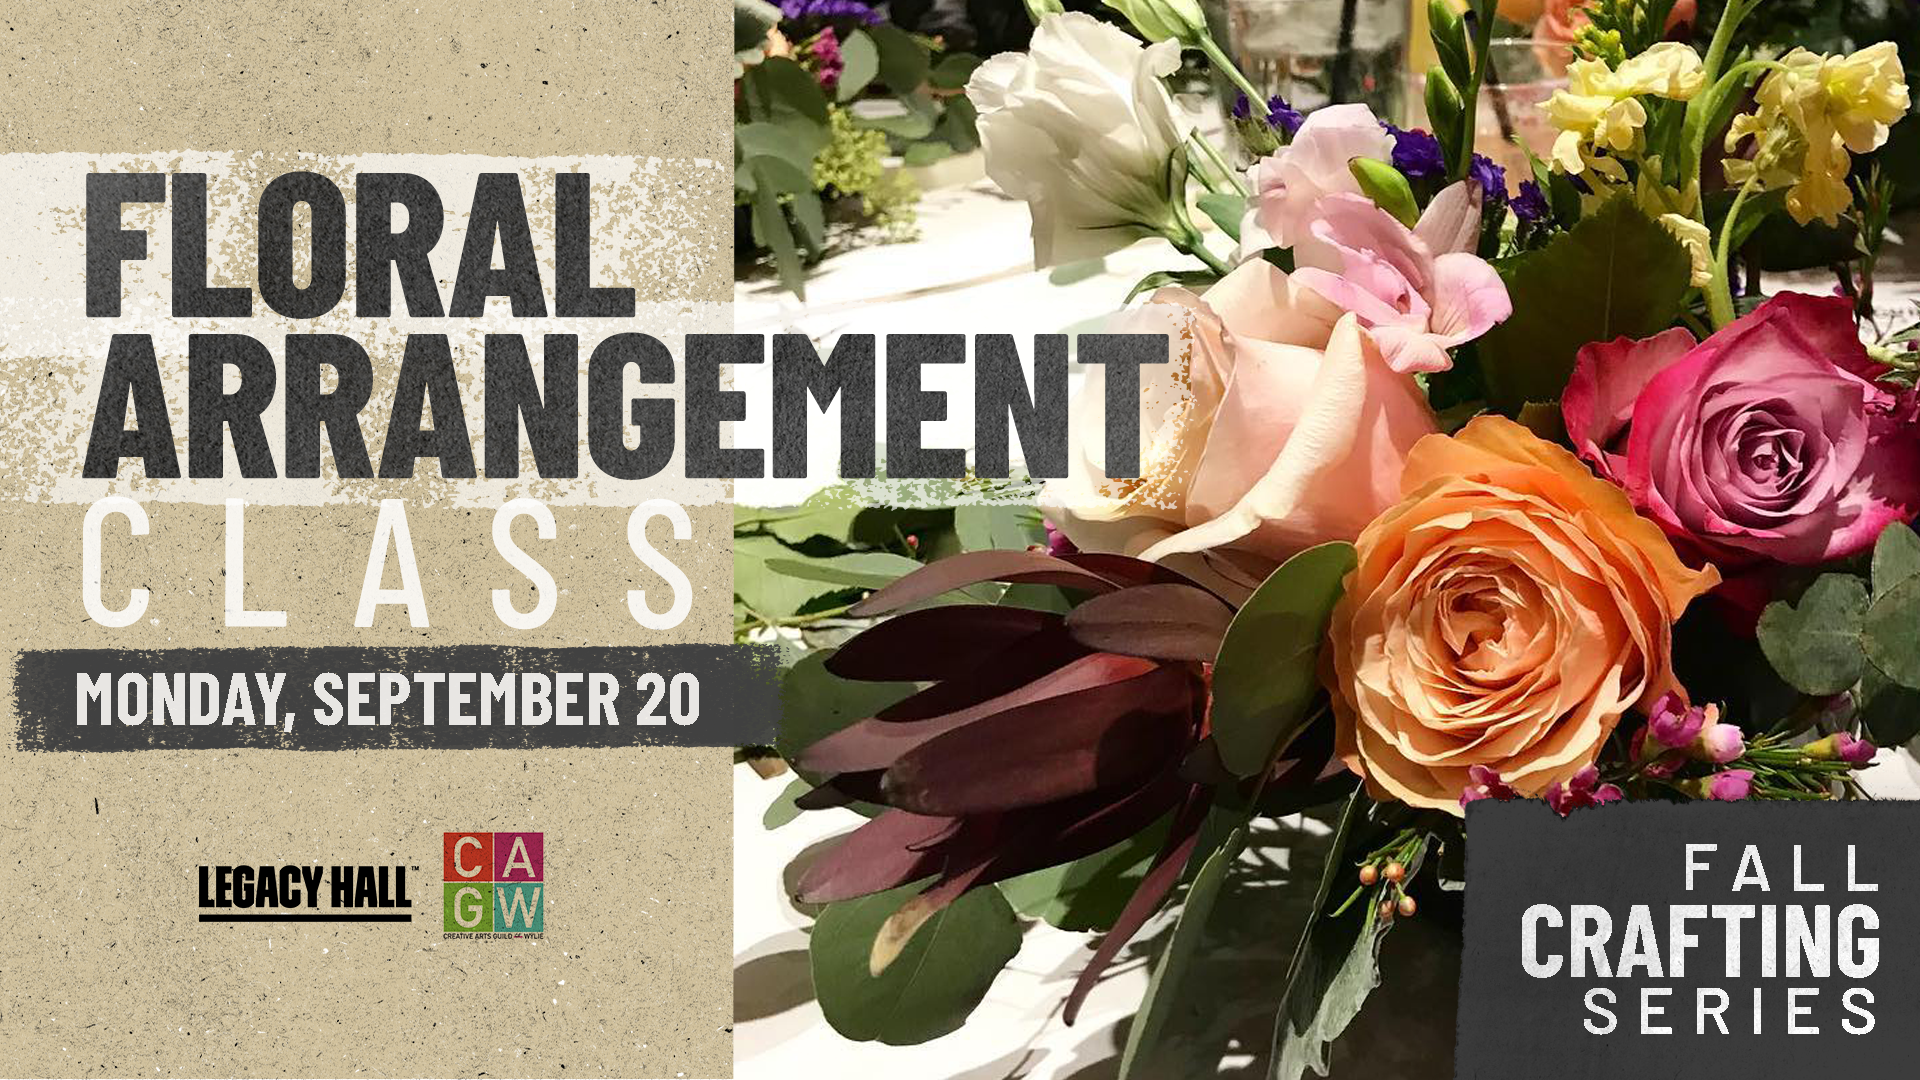 Promo image of Fall Crafting Series: Floral Arrangements